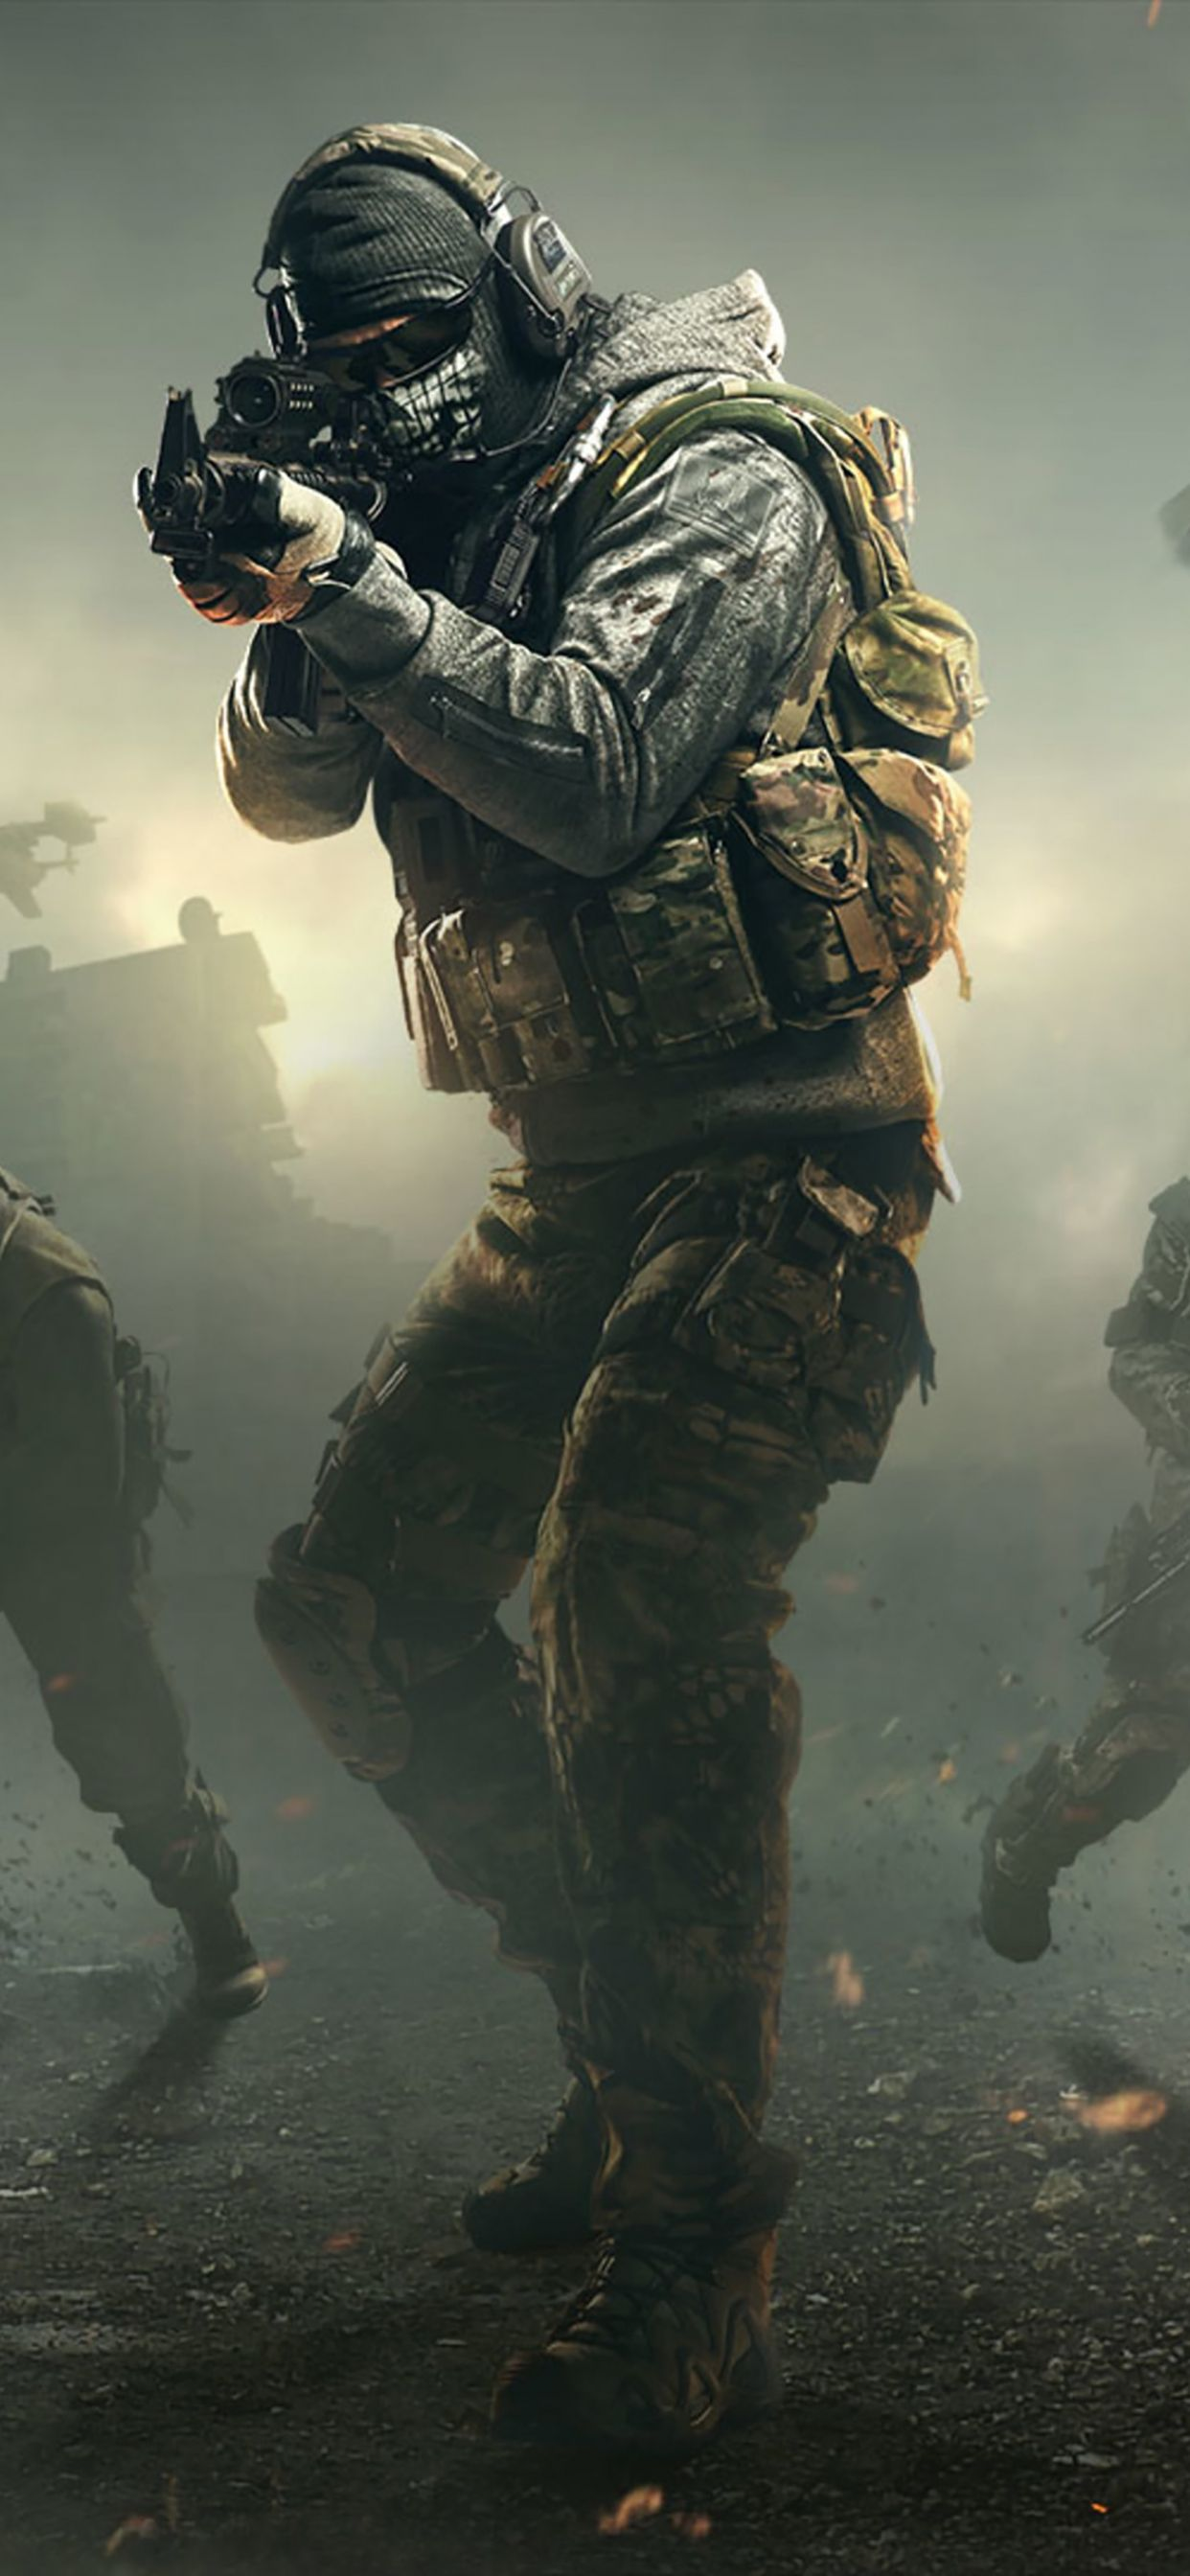 Call Of Duty Mobile 2019 Iphone 11 Pro Max Wallpaper Call Of Duty Call Of Duty Ghosts Army Wallpaper